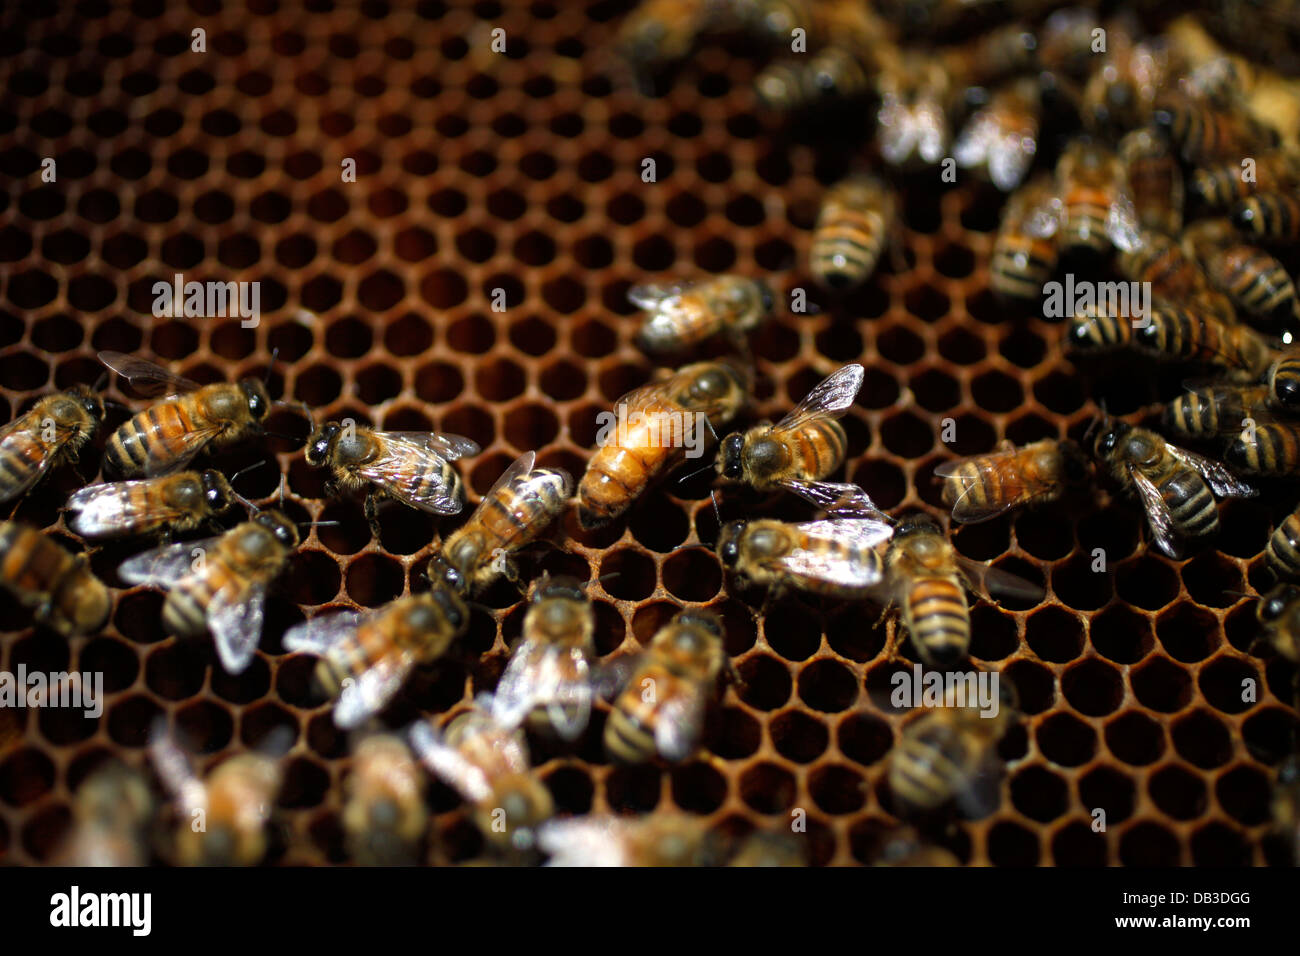 A queen bee, center, is surrounded by honeybees in Villanueva de Mesia, Granada, Andalusia, Spain, June 7, 2013. - Stock Image